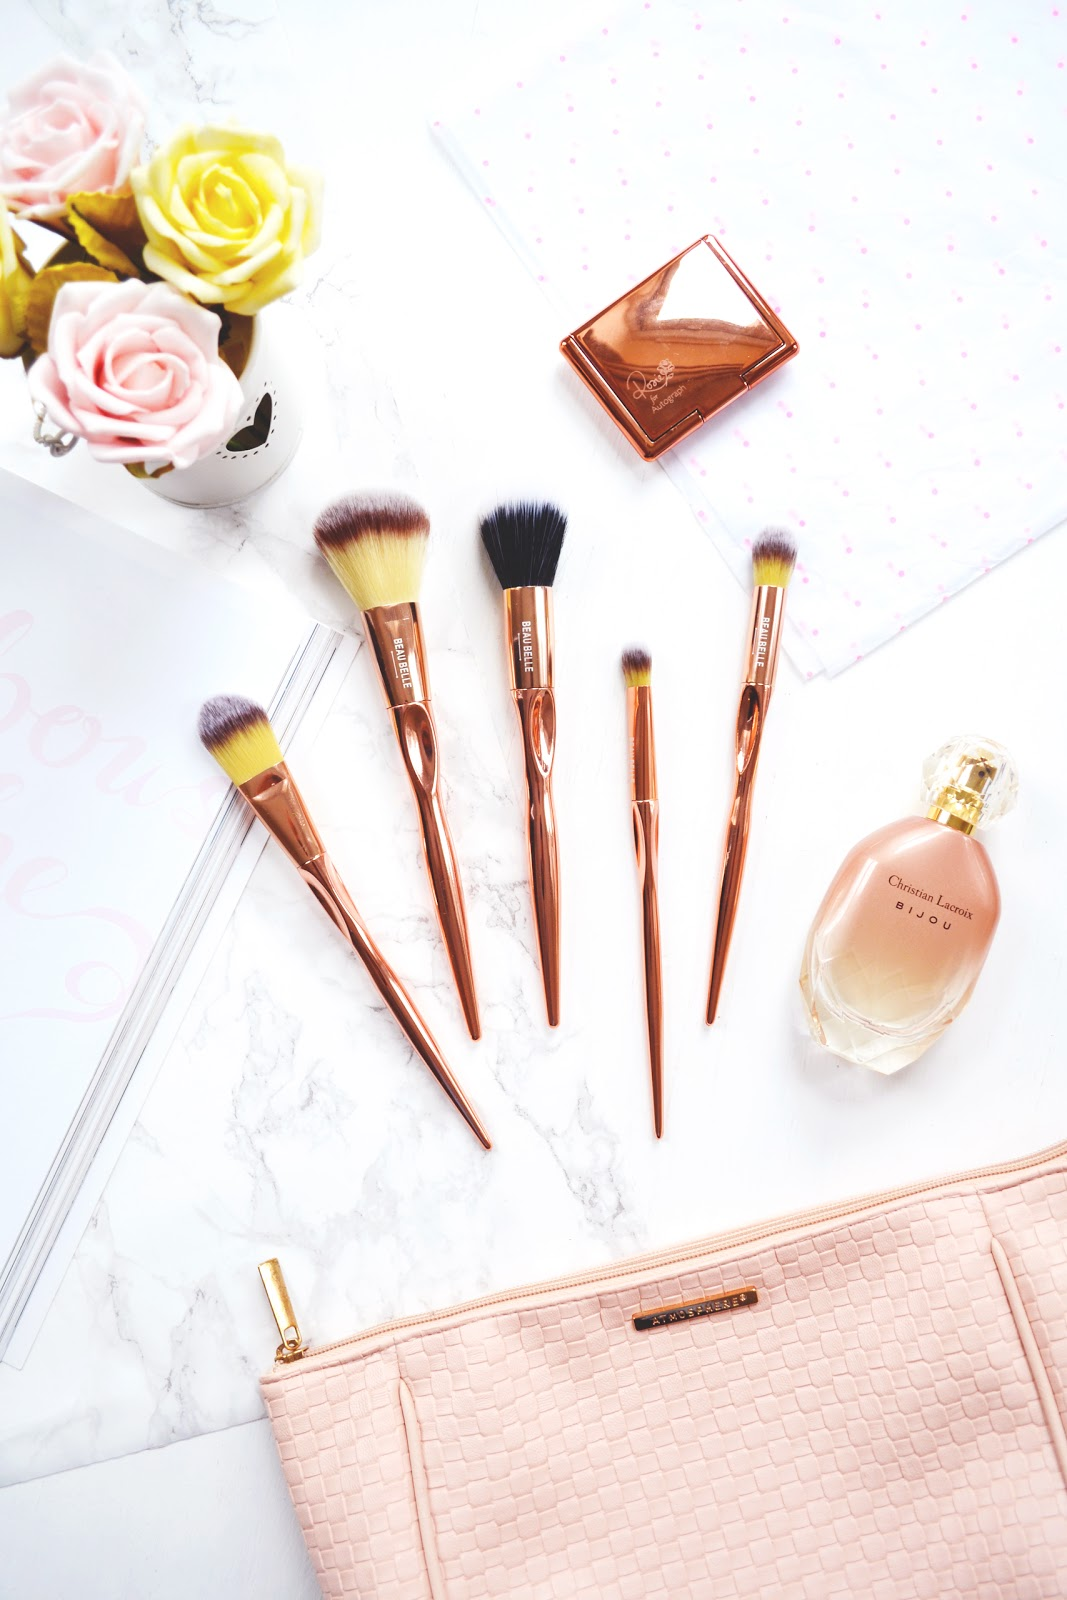 Where To Buy Instagram-Worthy Rose Gold Make Up Brushes